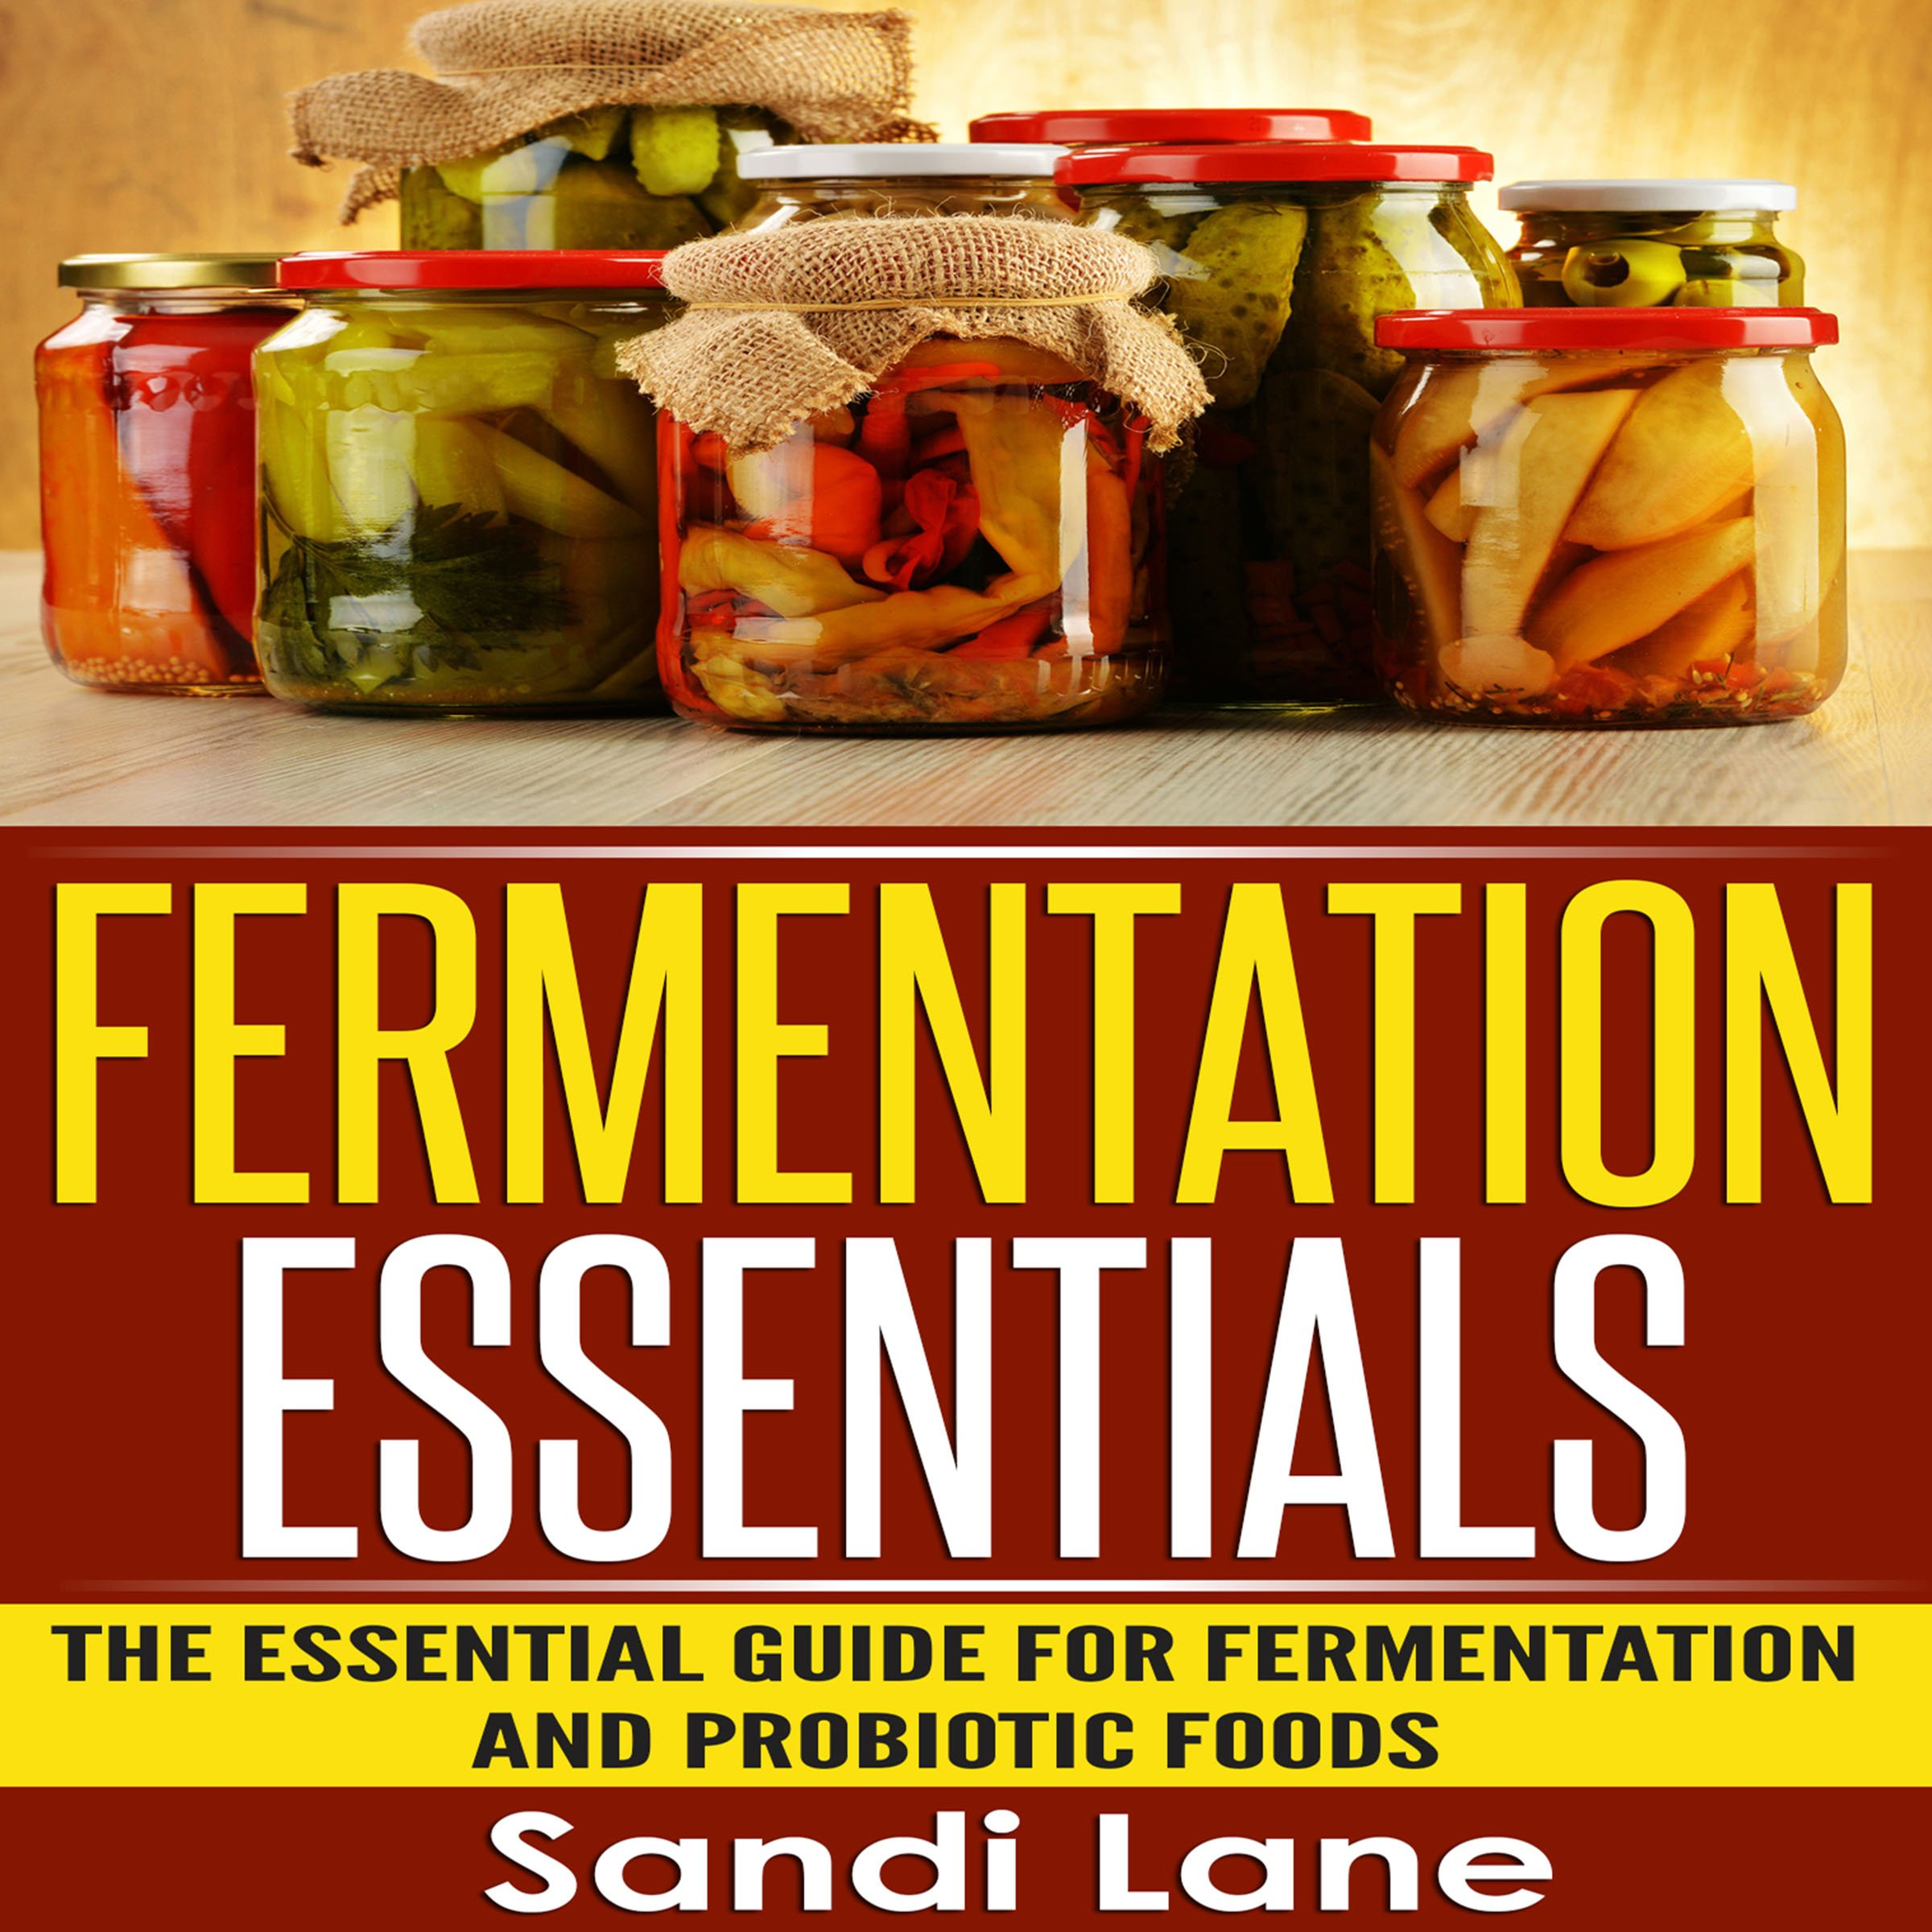 Fermentation Essentials: The Essential Guide for Fermentation and Probiotic Foods